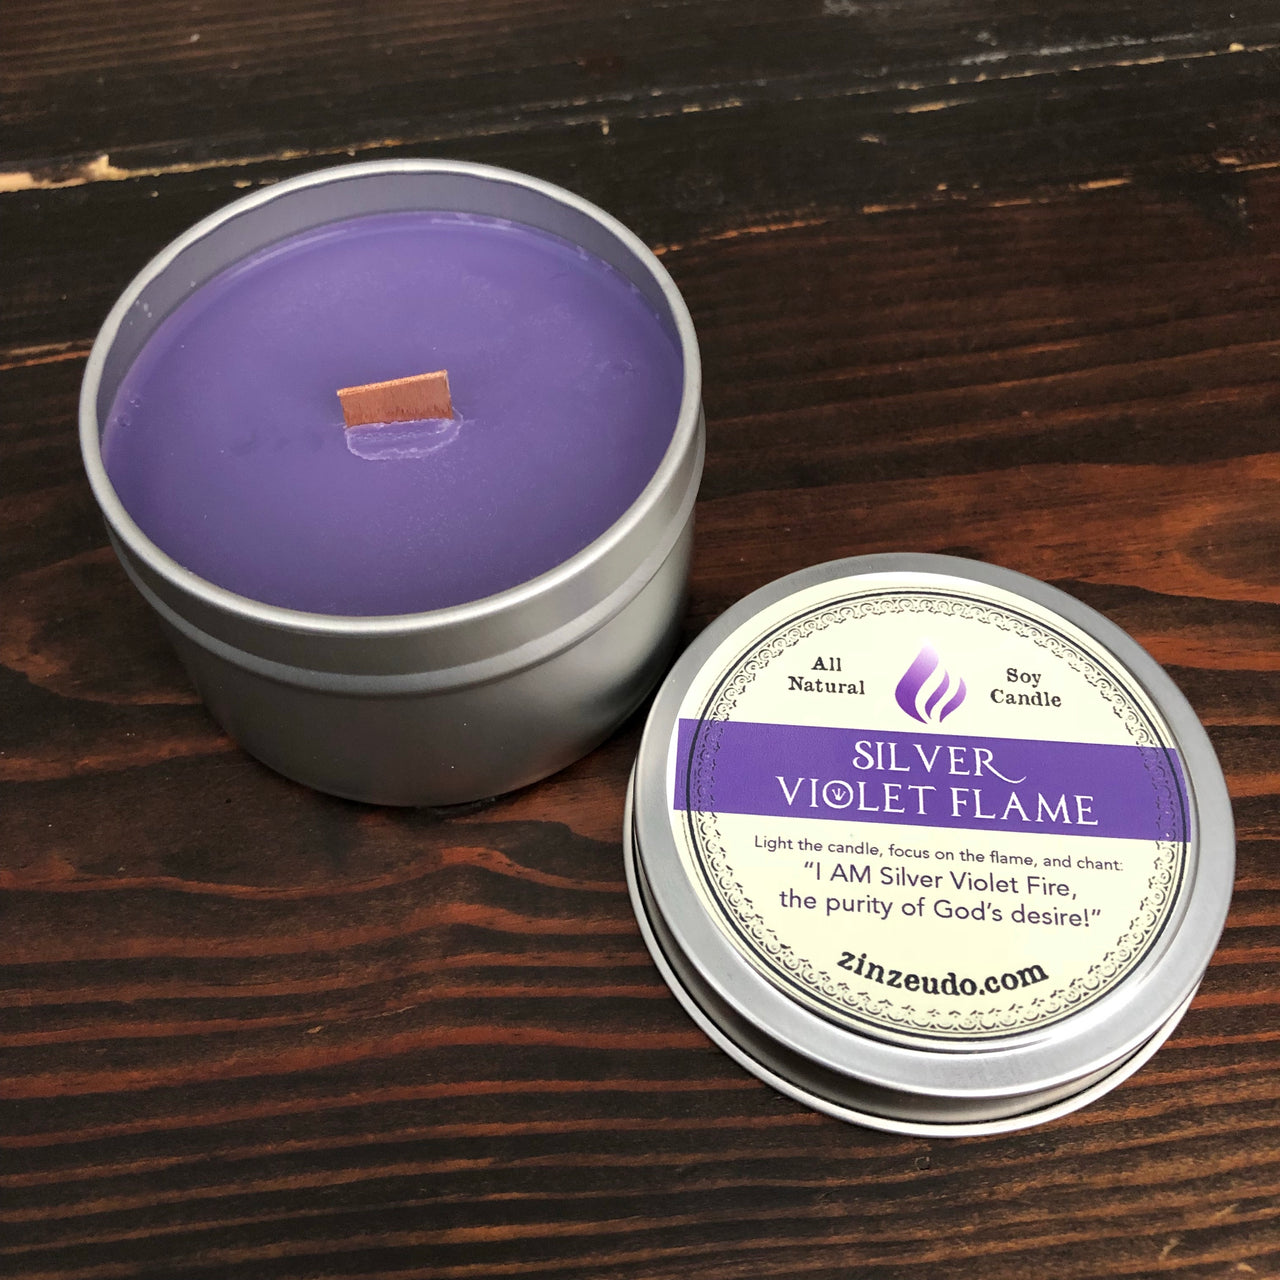 Silver Violet Flame Soy Candle